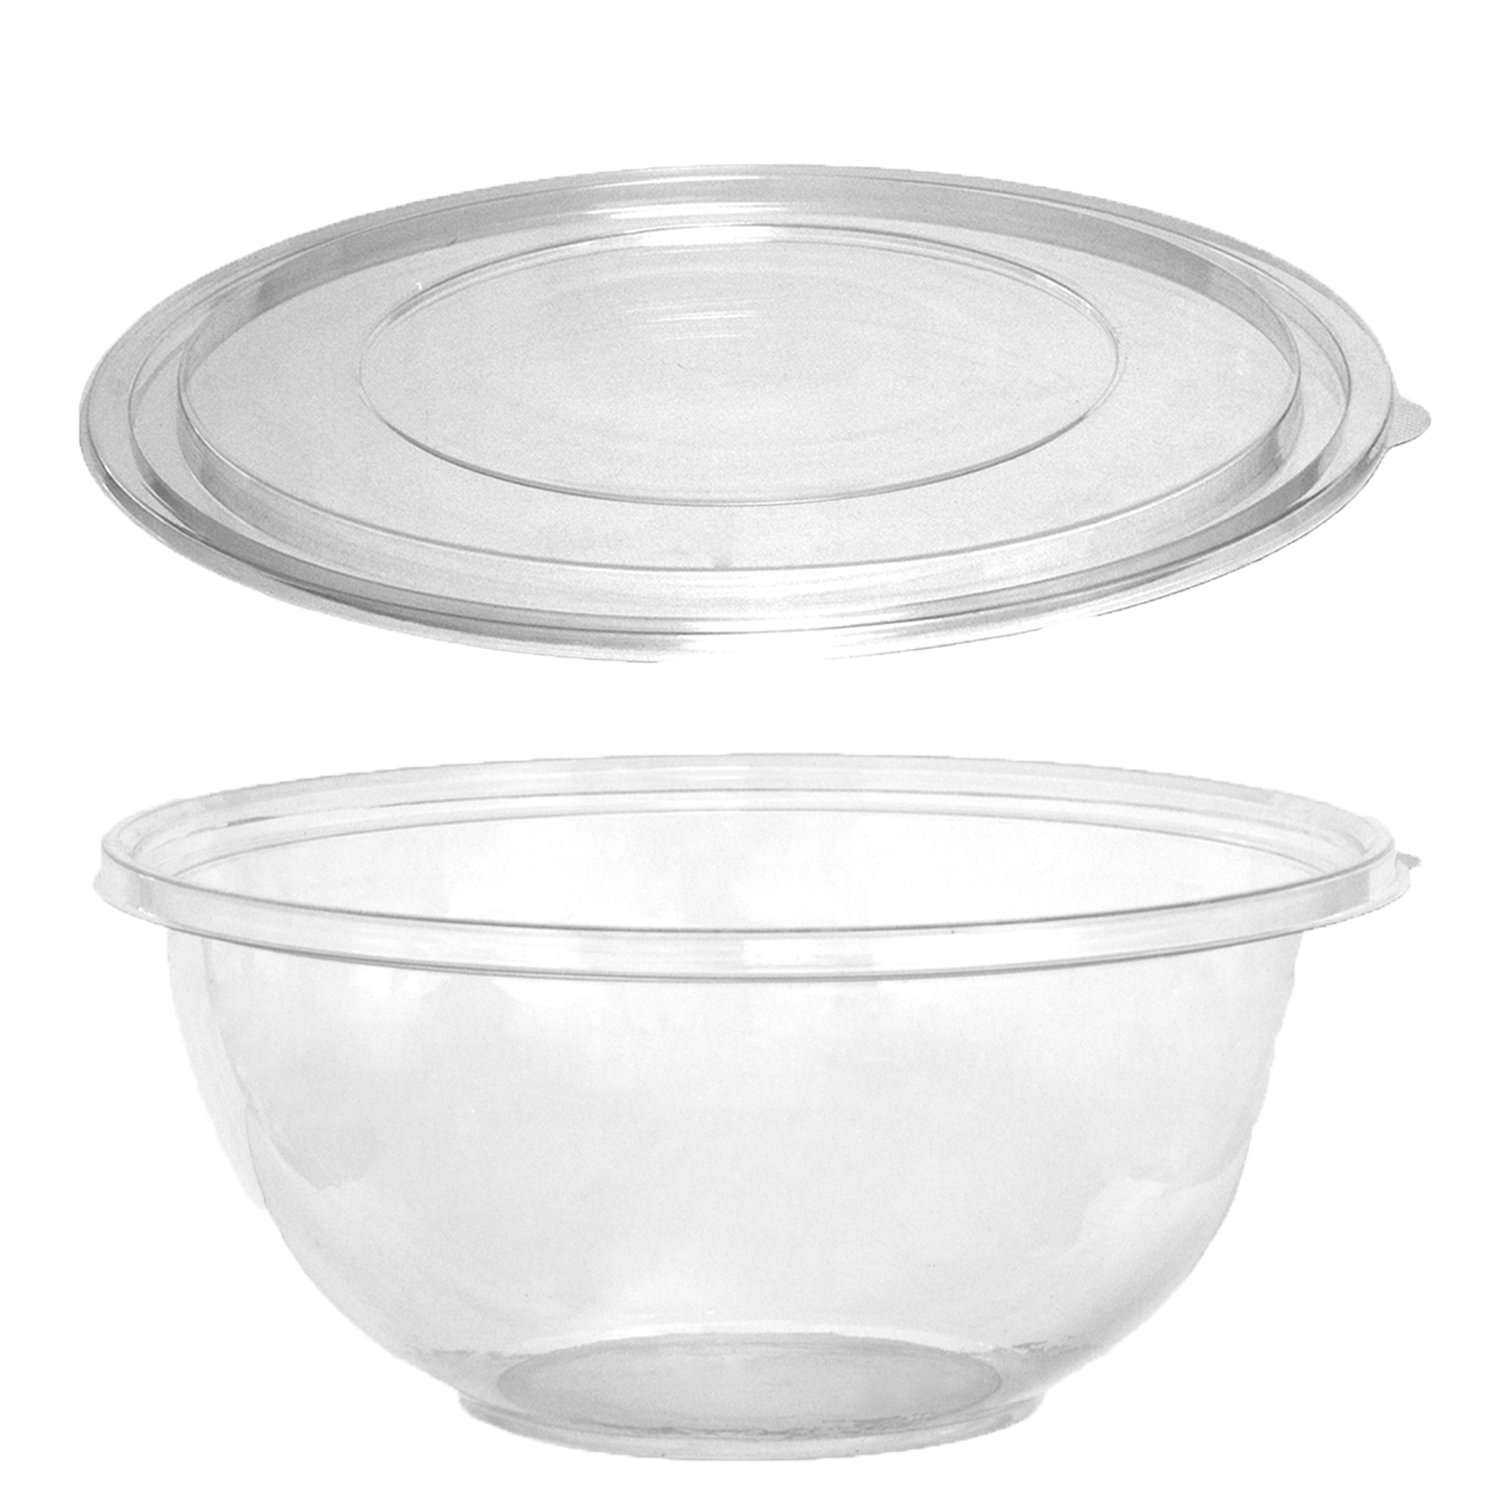 Party Essentials N432021 Soft Plastic 320-Ounce Serving/Catering Bowls, Clear with Clear Lids, Set of 2